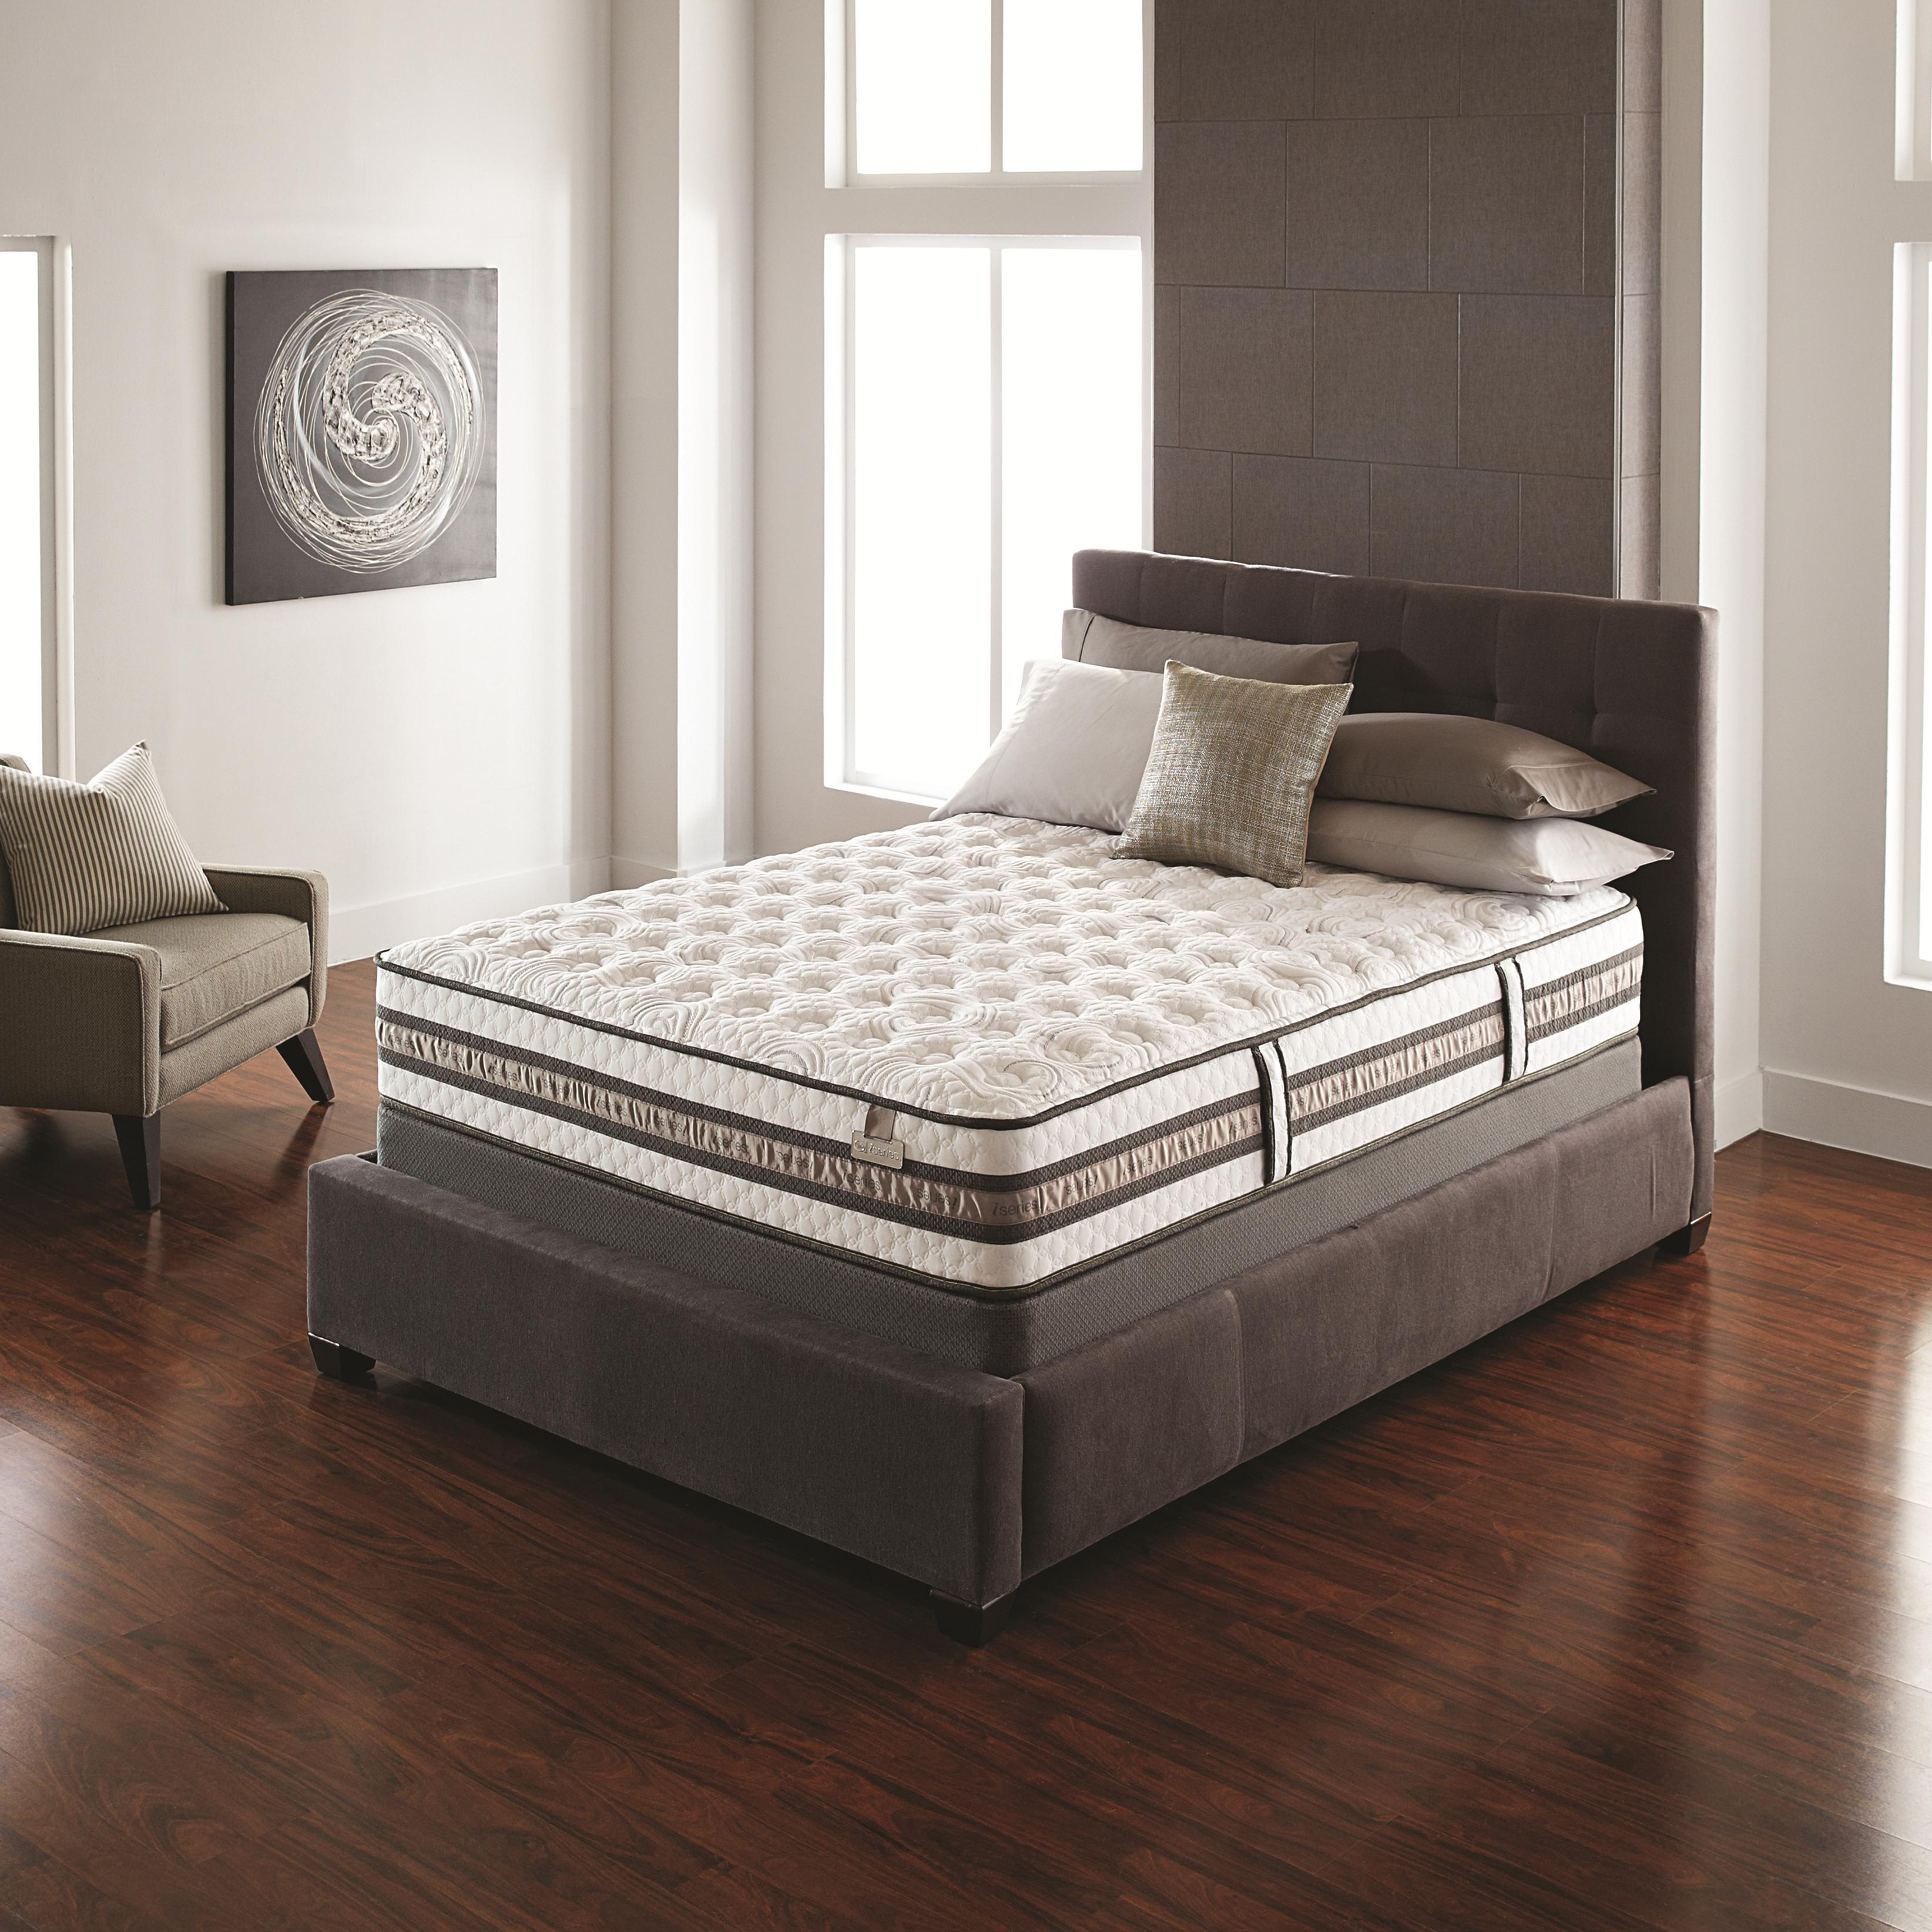 Serta iSeries Vantage Full Firm Mattress - Item Number: 400081F